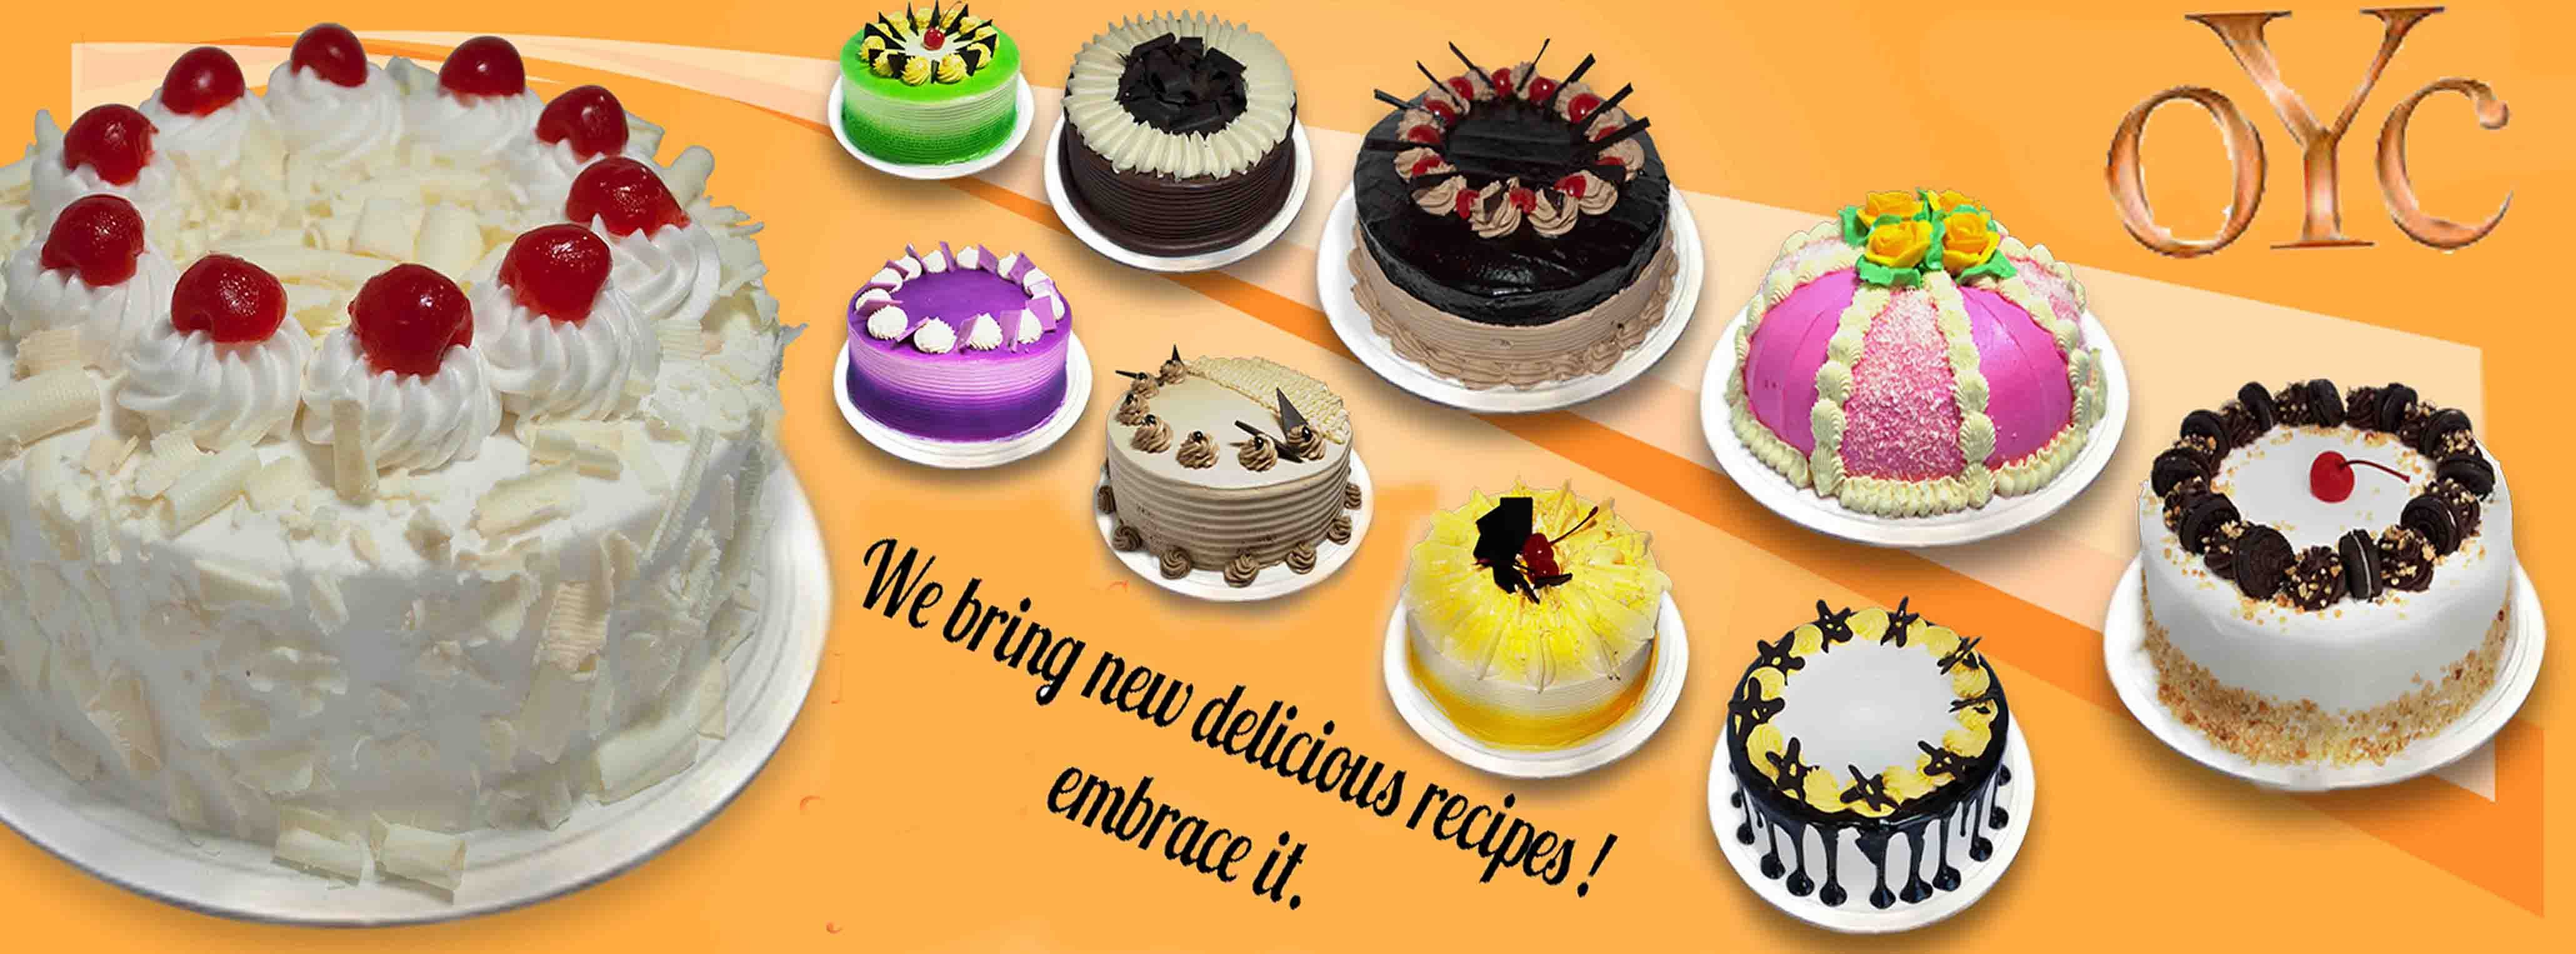 Online Cake Shop in Chennai. We have